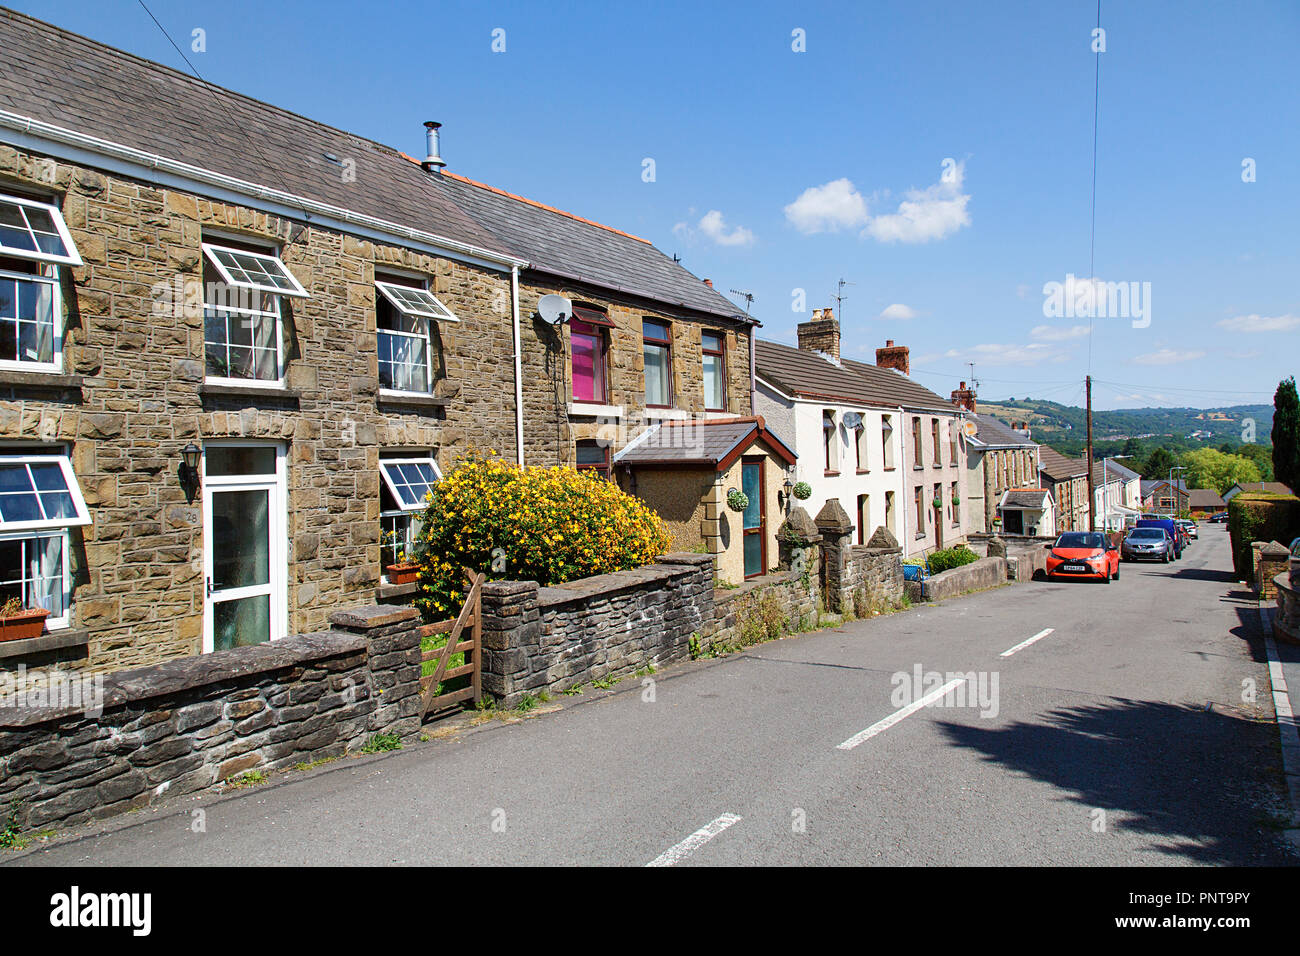 Swansea, UK: July 07, 2018: Street view of typical double fronted terraced house in a Welsh village. Summertime with garden flowers and blue sky. Stock Photo